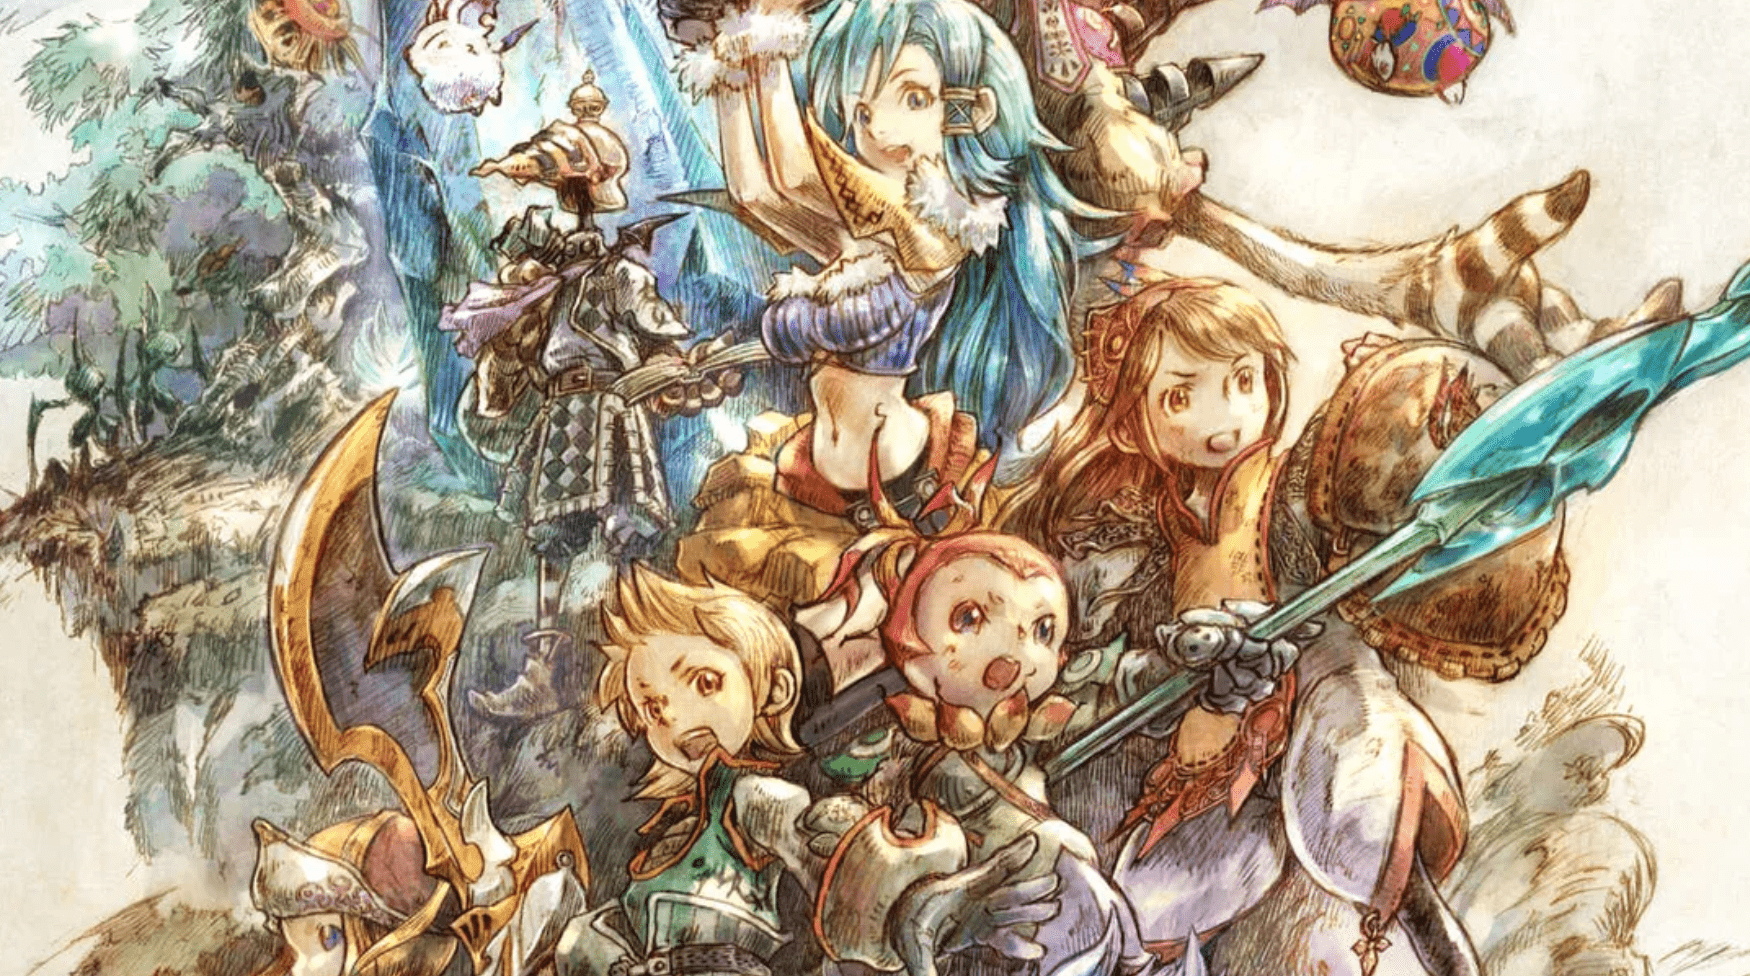 Always loved the classic Final Fantasy art style